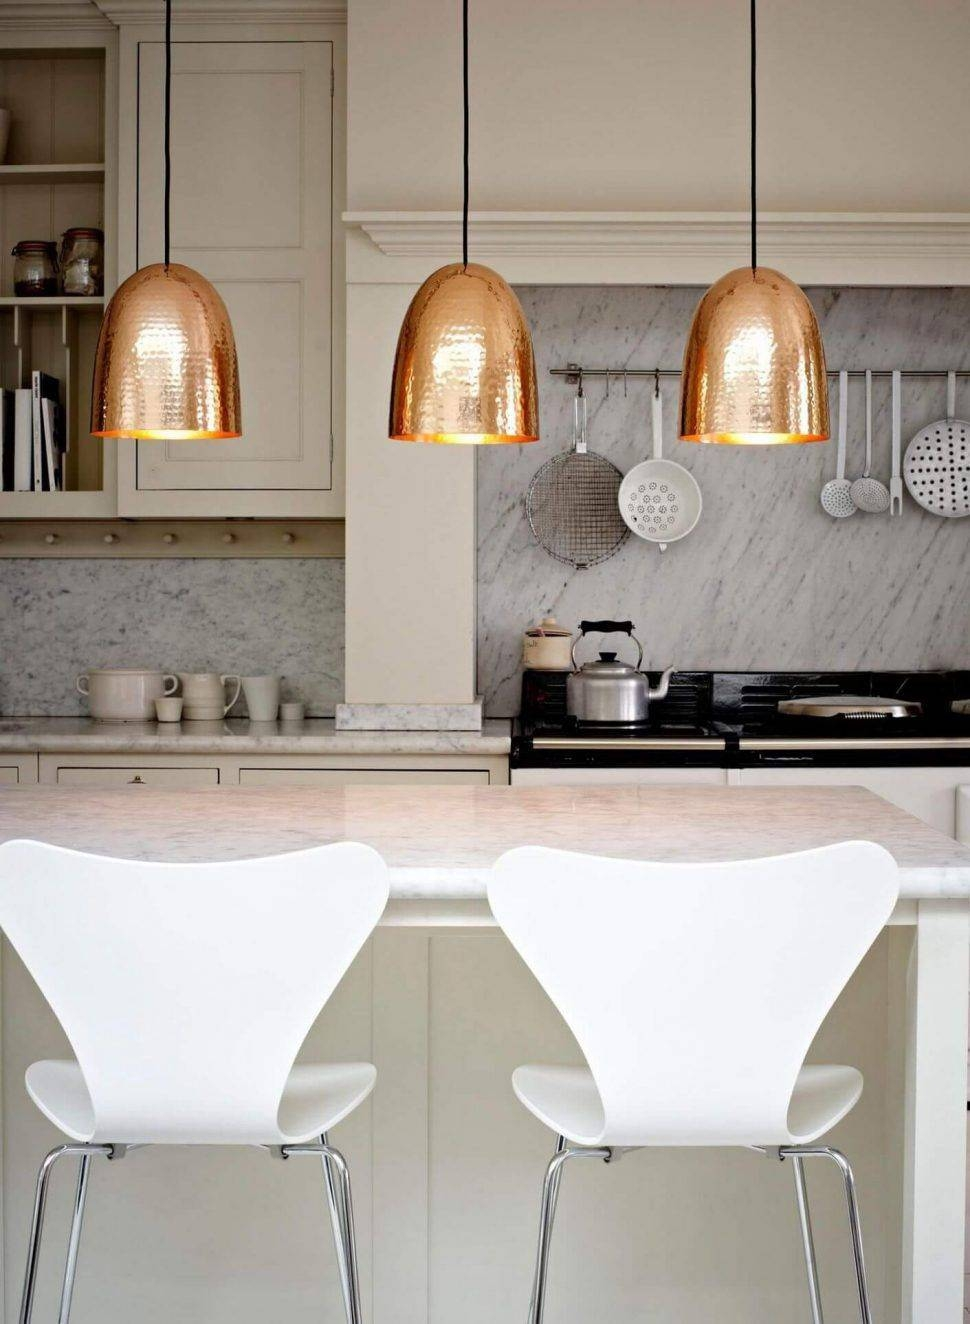 Kitchen Island Pendant Lighting For Height Ideas Mini Light within Silver Kitchen Pendant Lighting (Image 4 of 15)